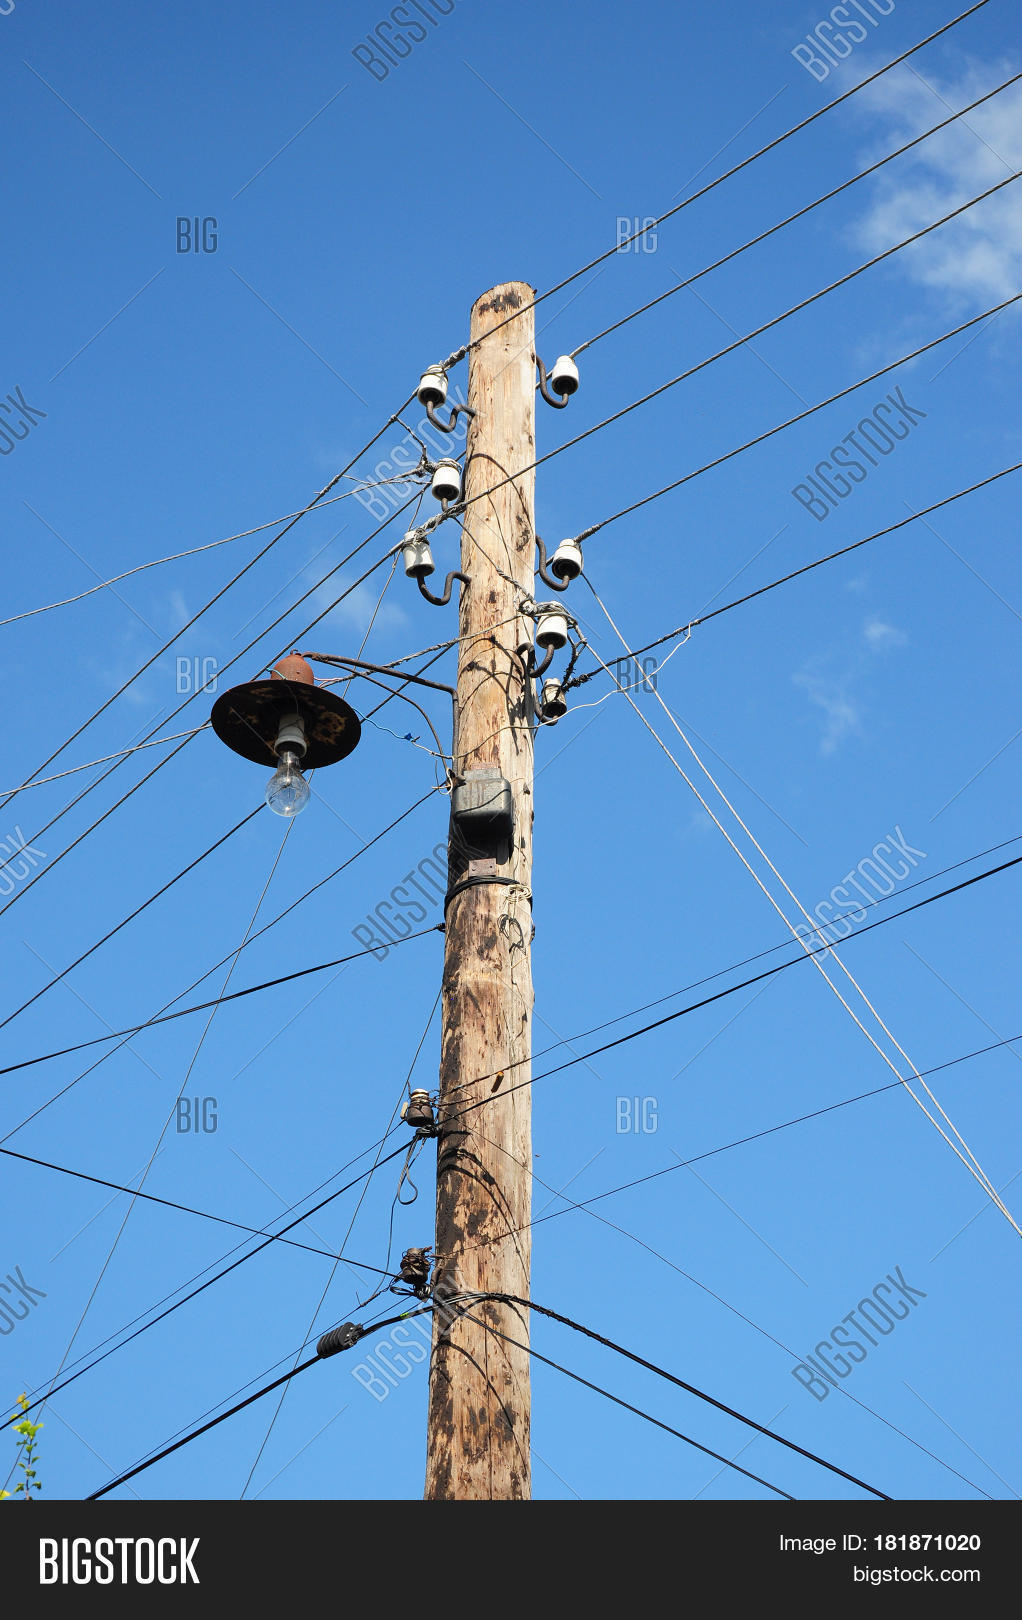 Wood Power Poles Sizes : Old wooden electric post power pole image photo bigstock